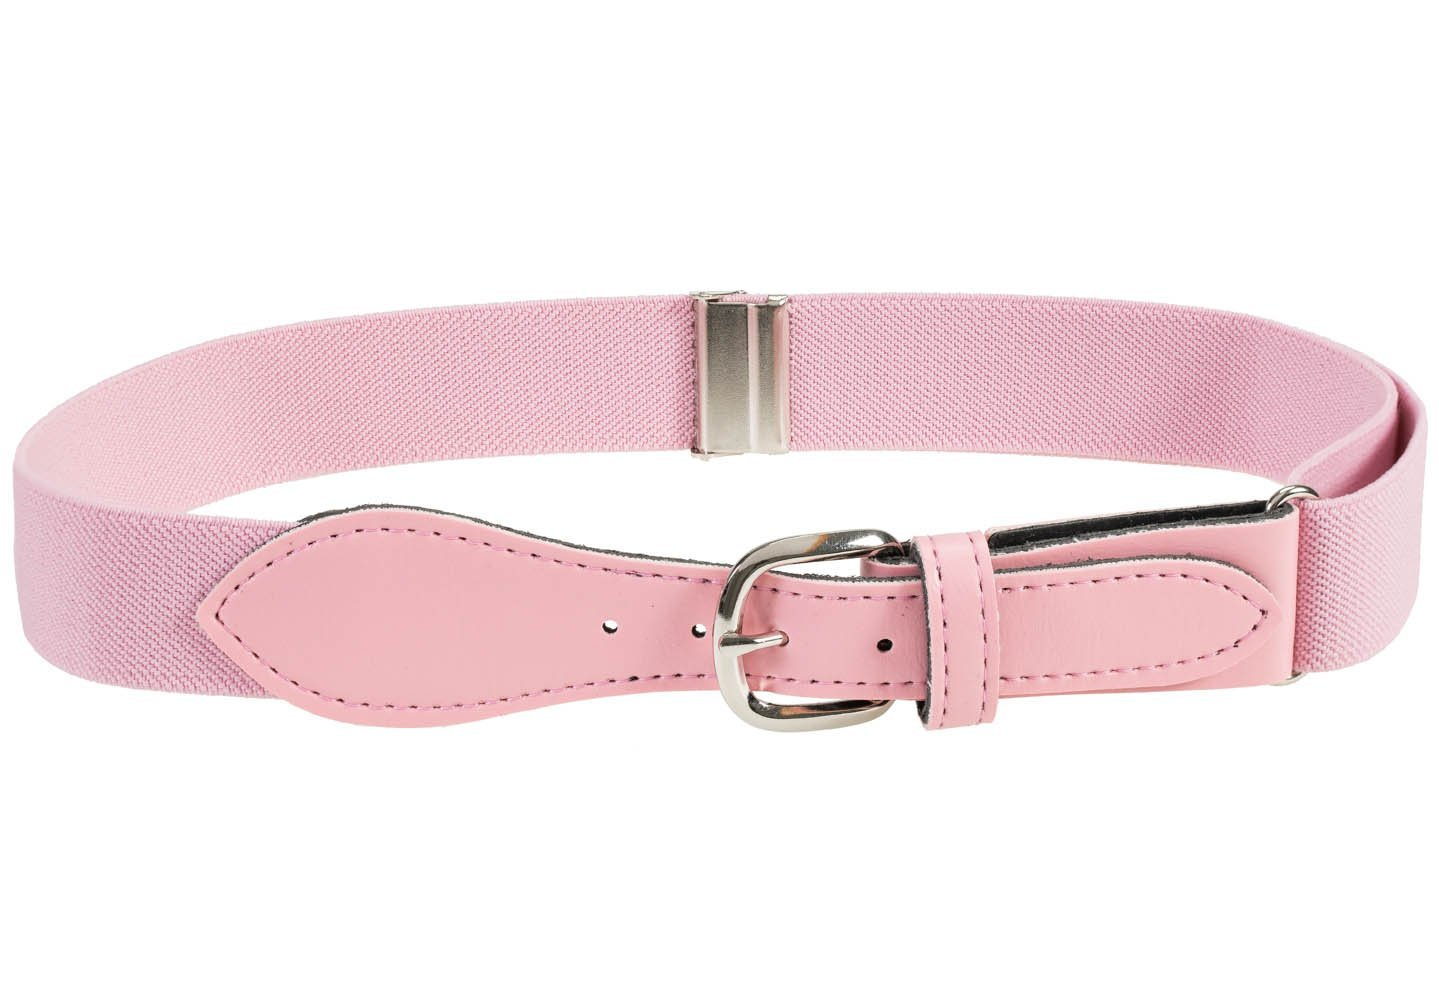 Kids Elastic Adjustable Belt with Leather Closure - Light Pink